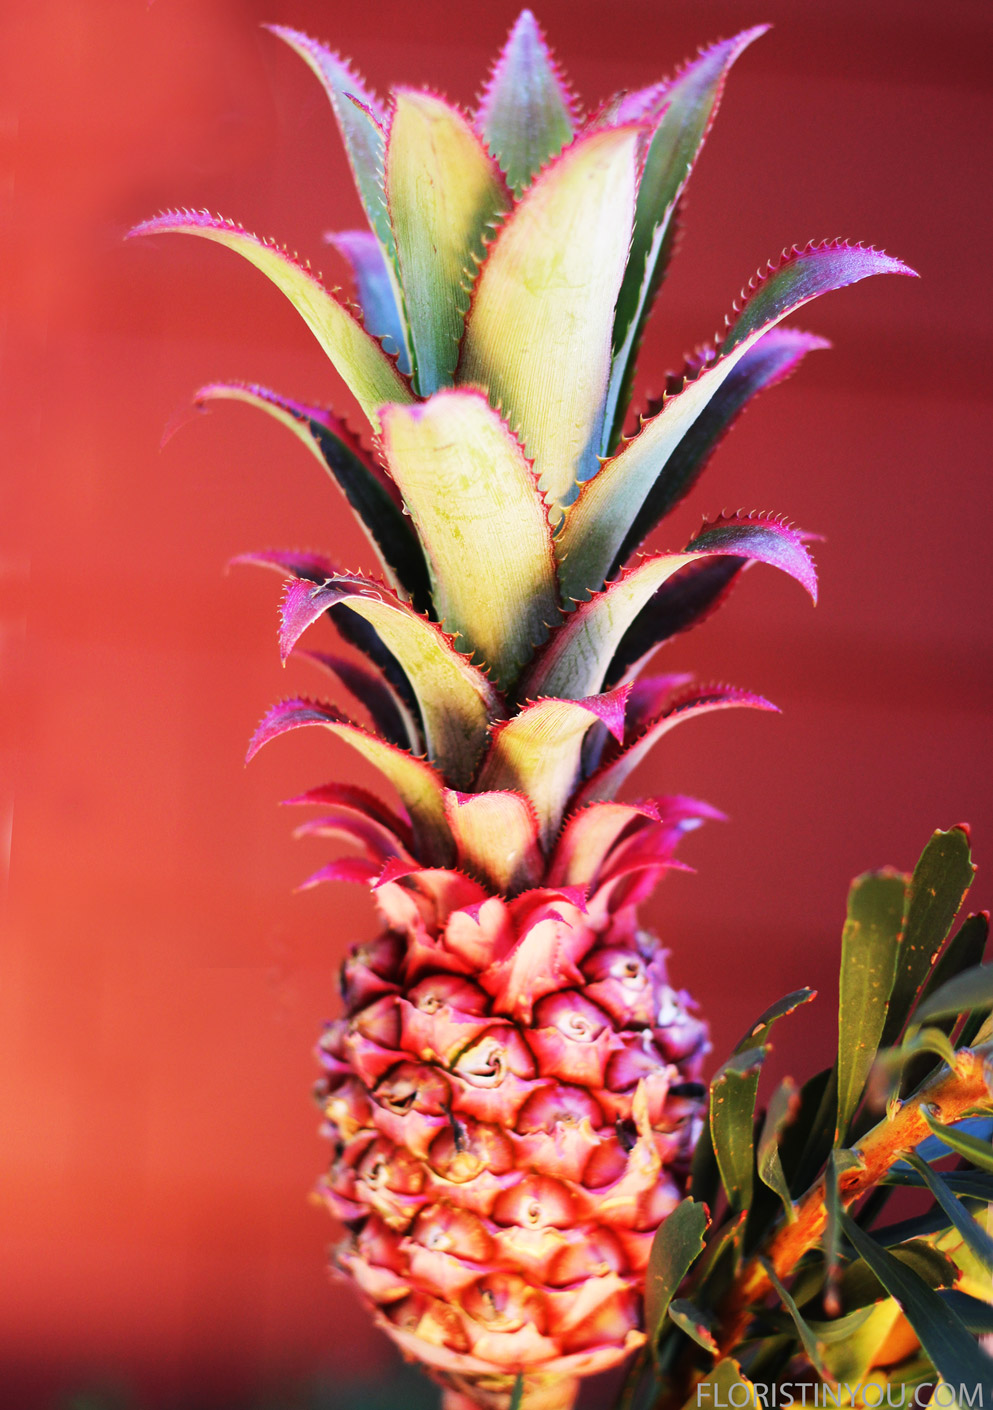 This is the Decorative Pink Pineapple. Fun.